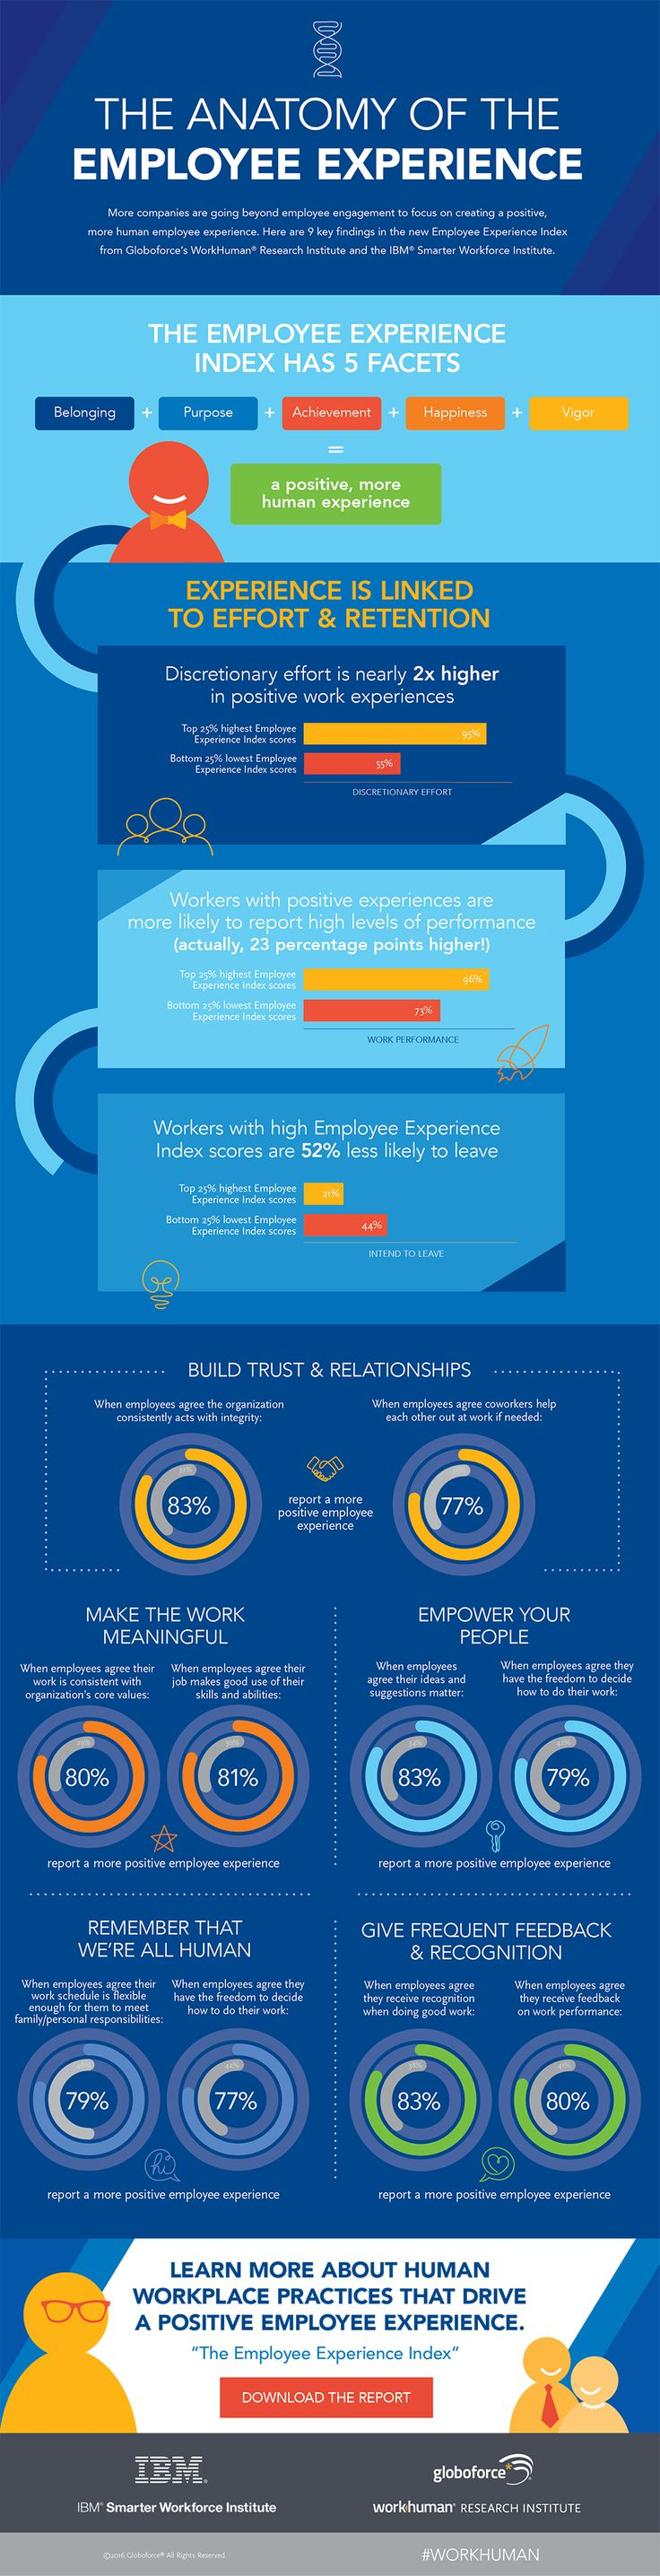 best images about employee experience bad boss most hr professionals are focused on employee engagement but did you know employee experience impacts retention effort and performance